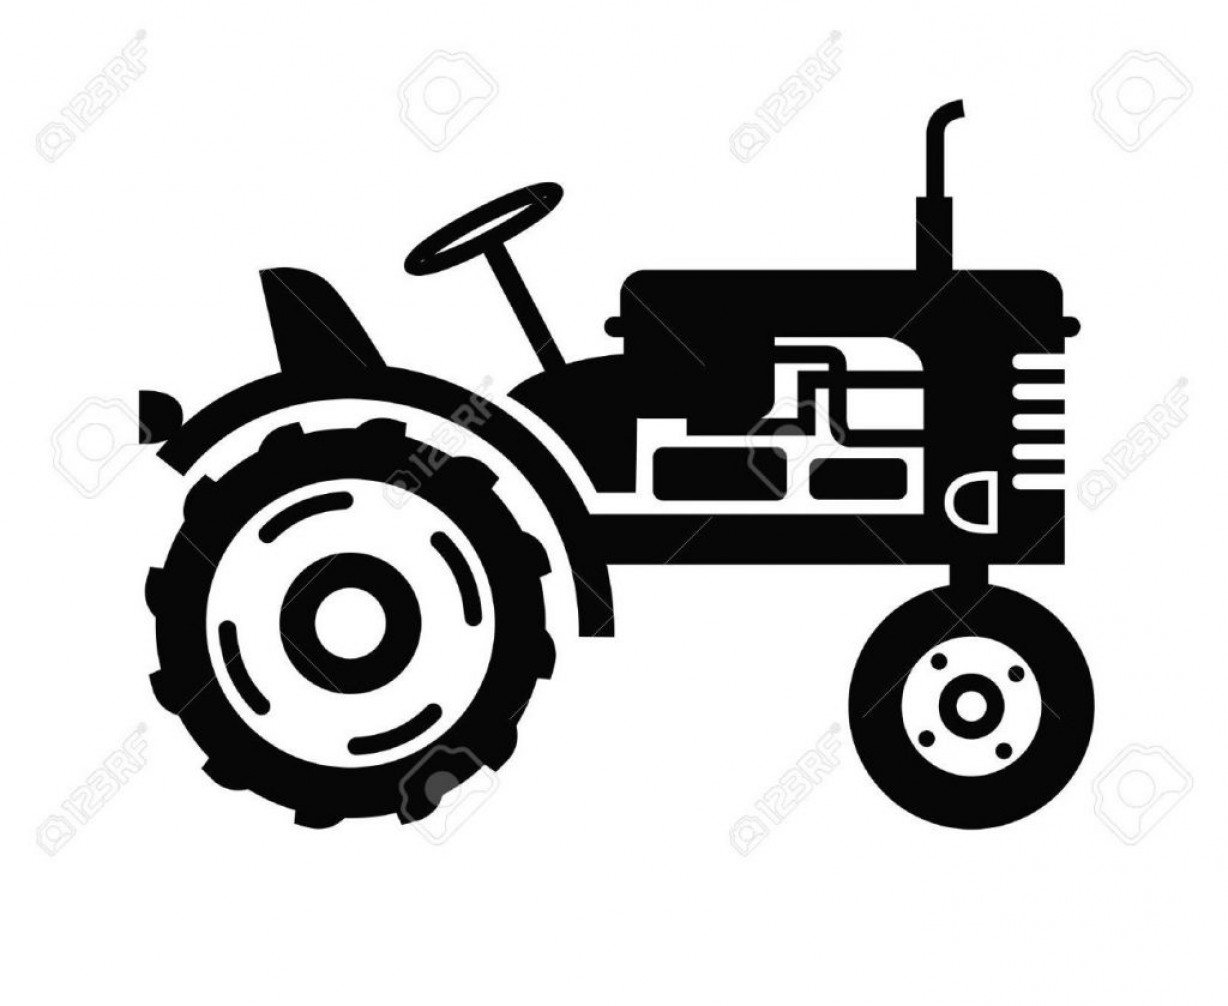 Free Tractor Vector: Best Free Vector Black Tractor Icon On White Background Design